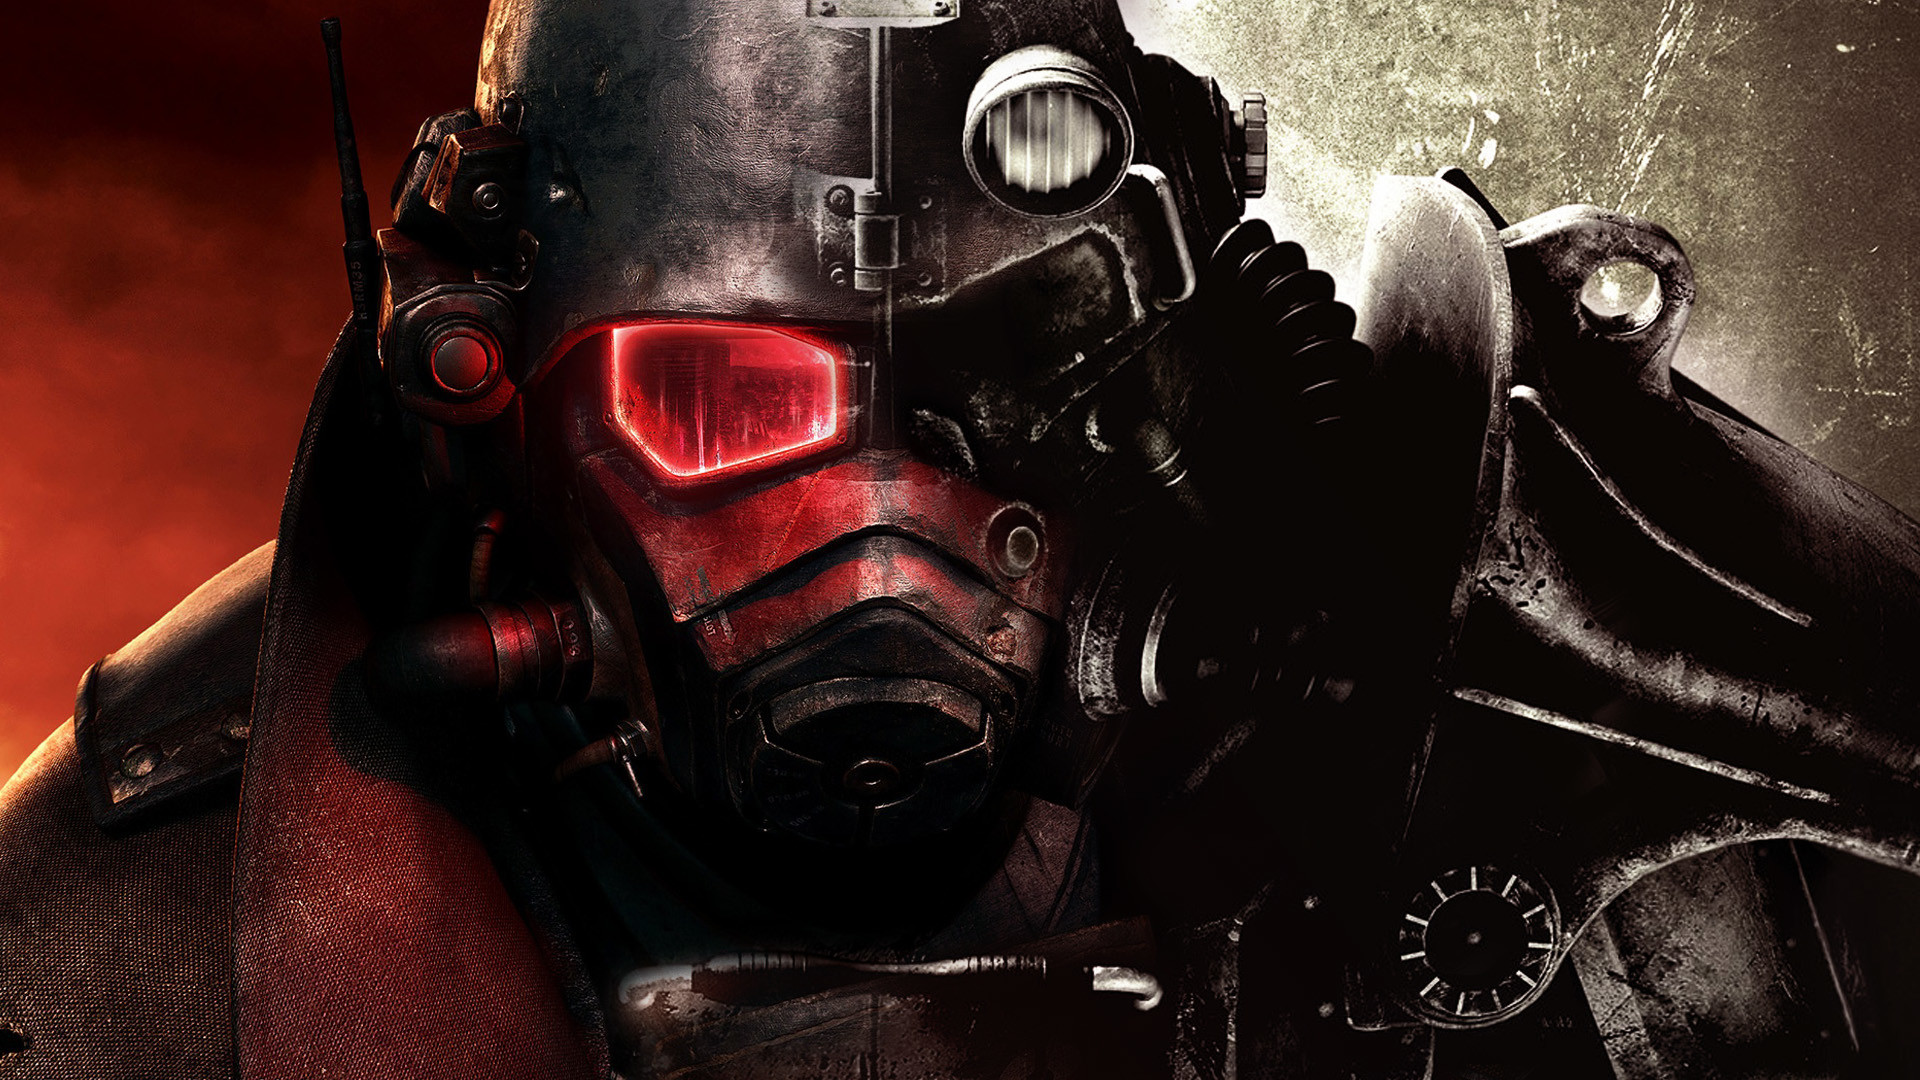 Fallout Wallpapers – HD Wallpapers Backgrounds of Your Choice